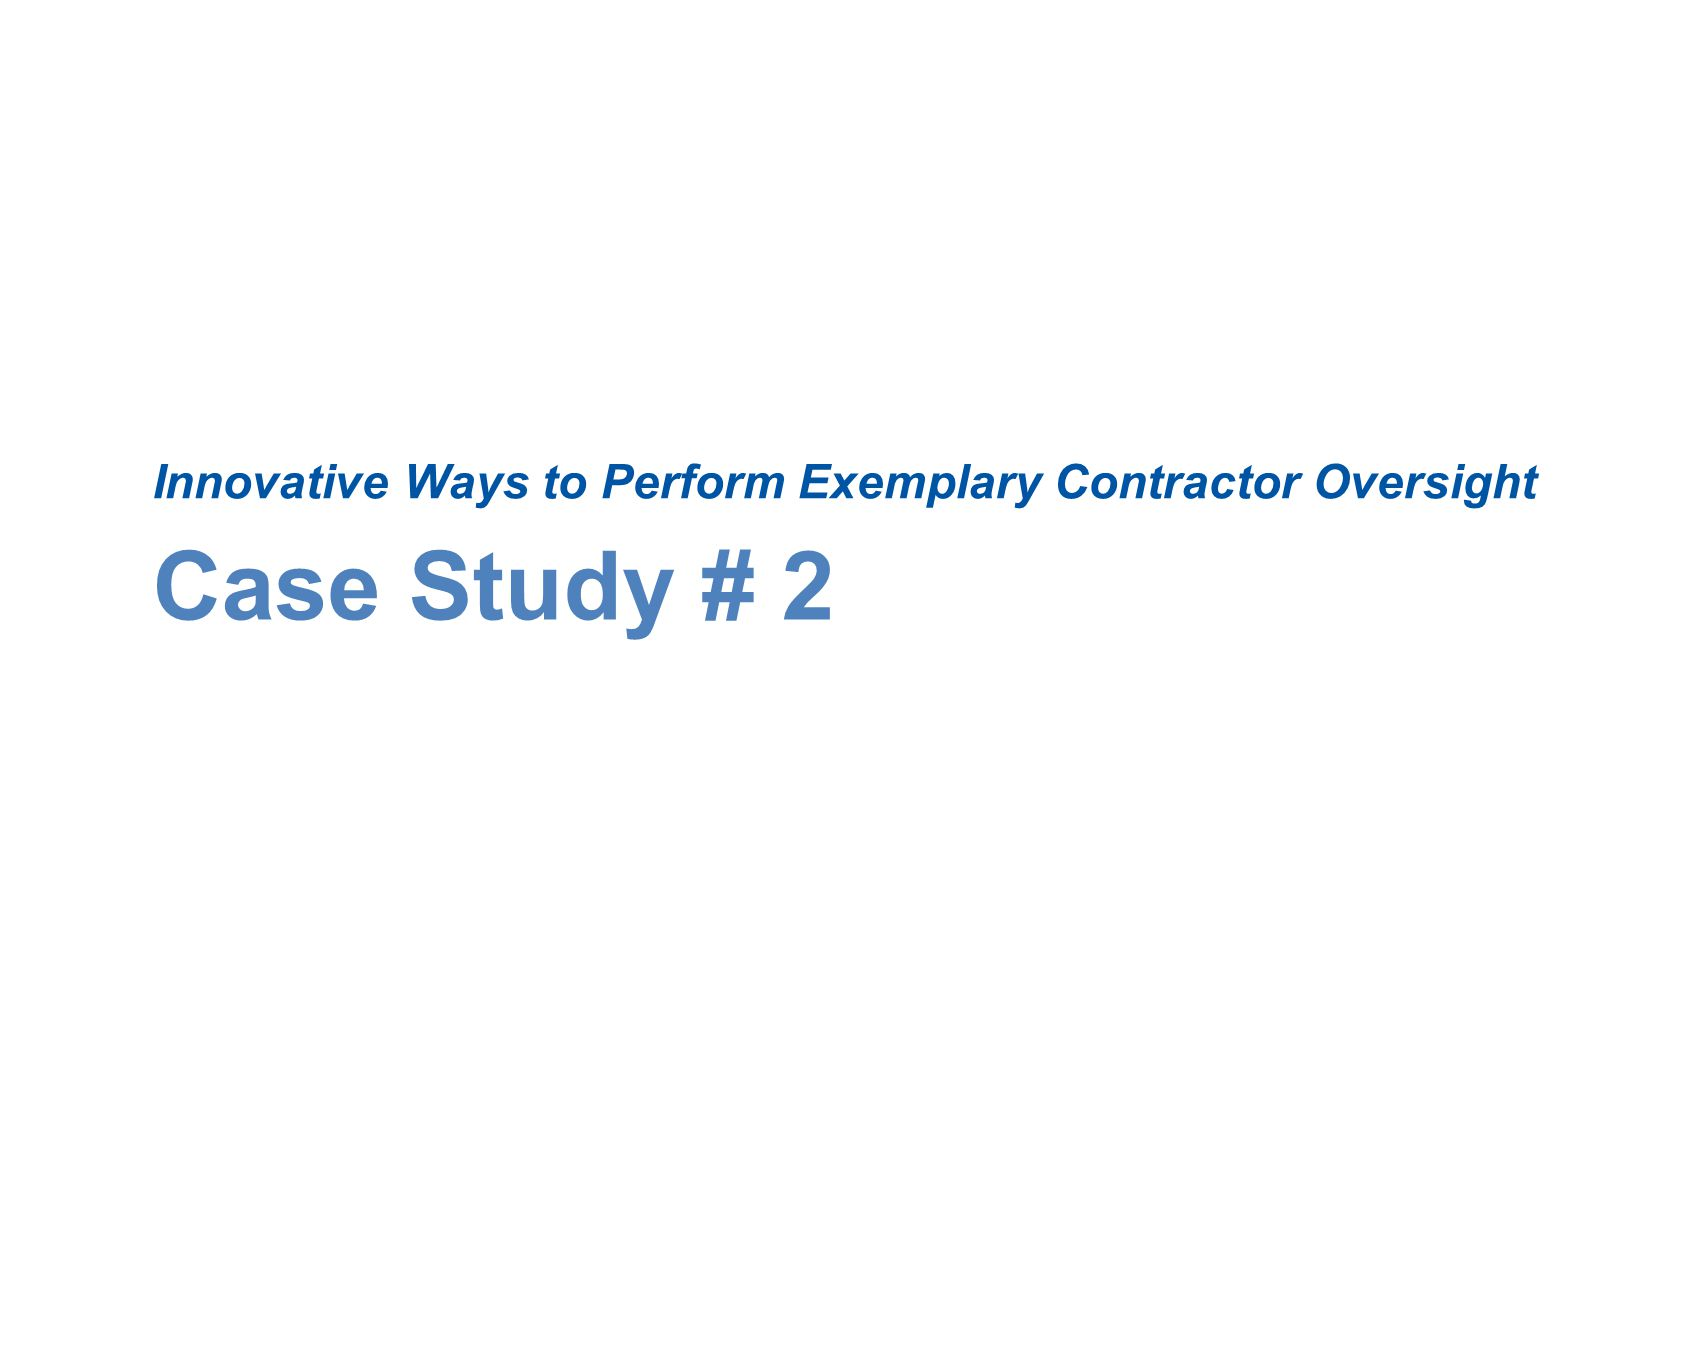 Case Study # 2 Innovative Ways to Perform Exemplary Contractor Oversight